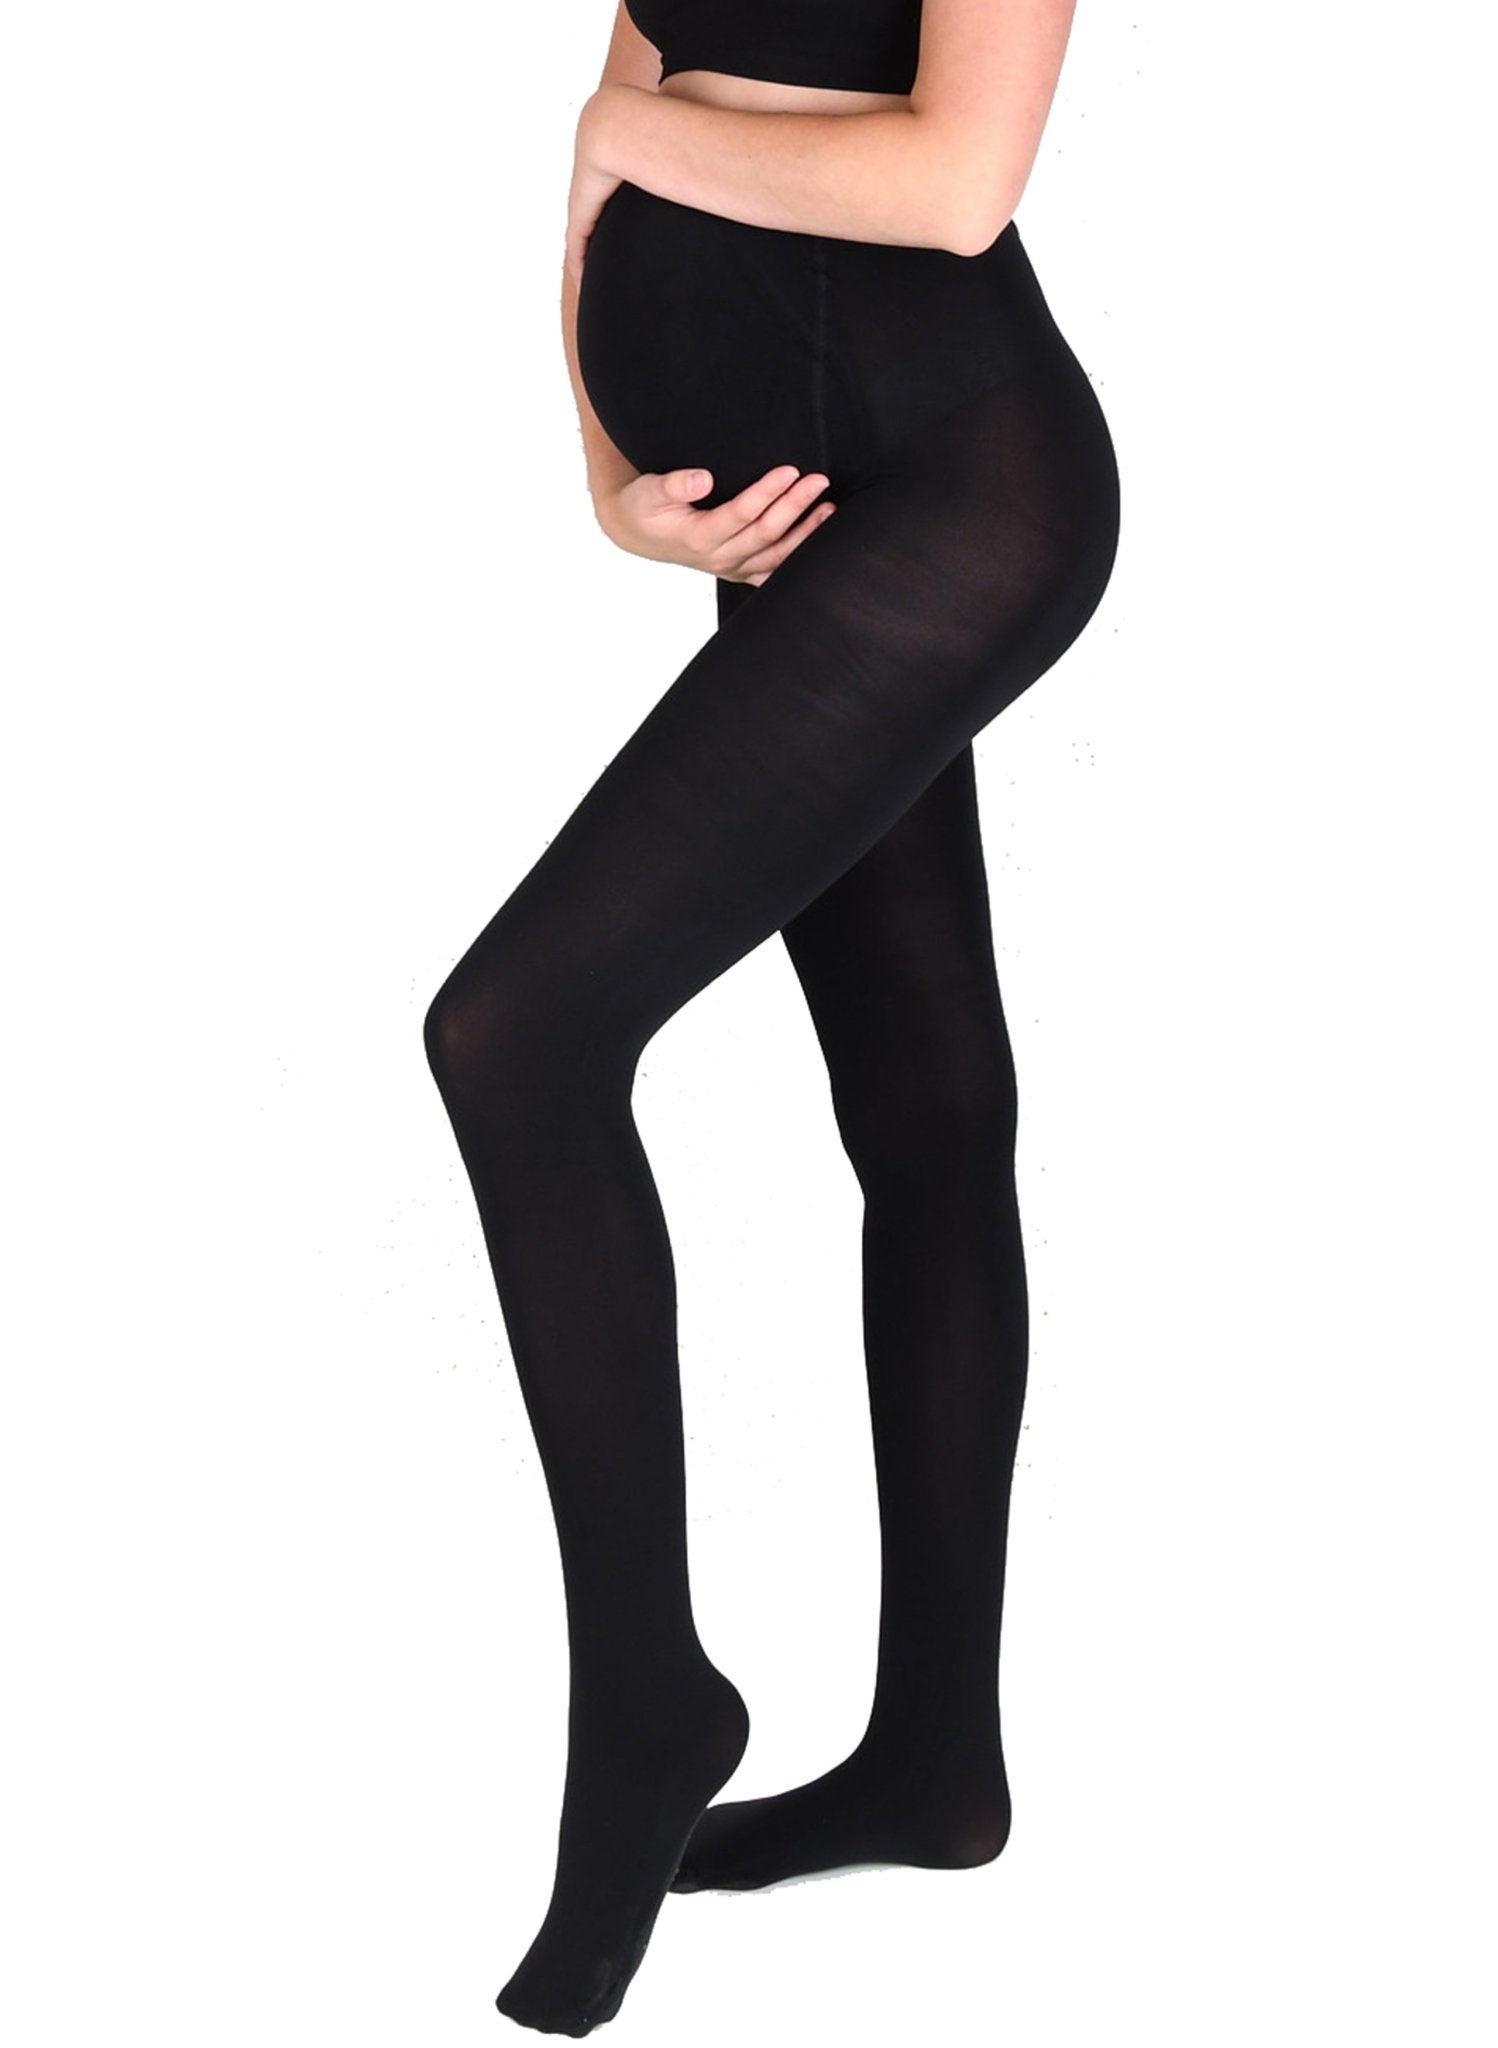 100Den Maternity Tights - Black - Mums and Bumps